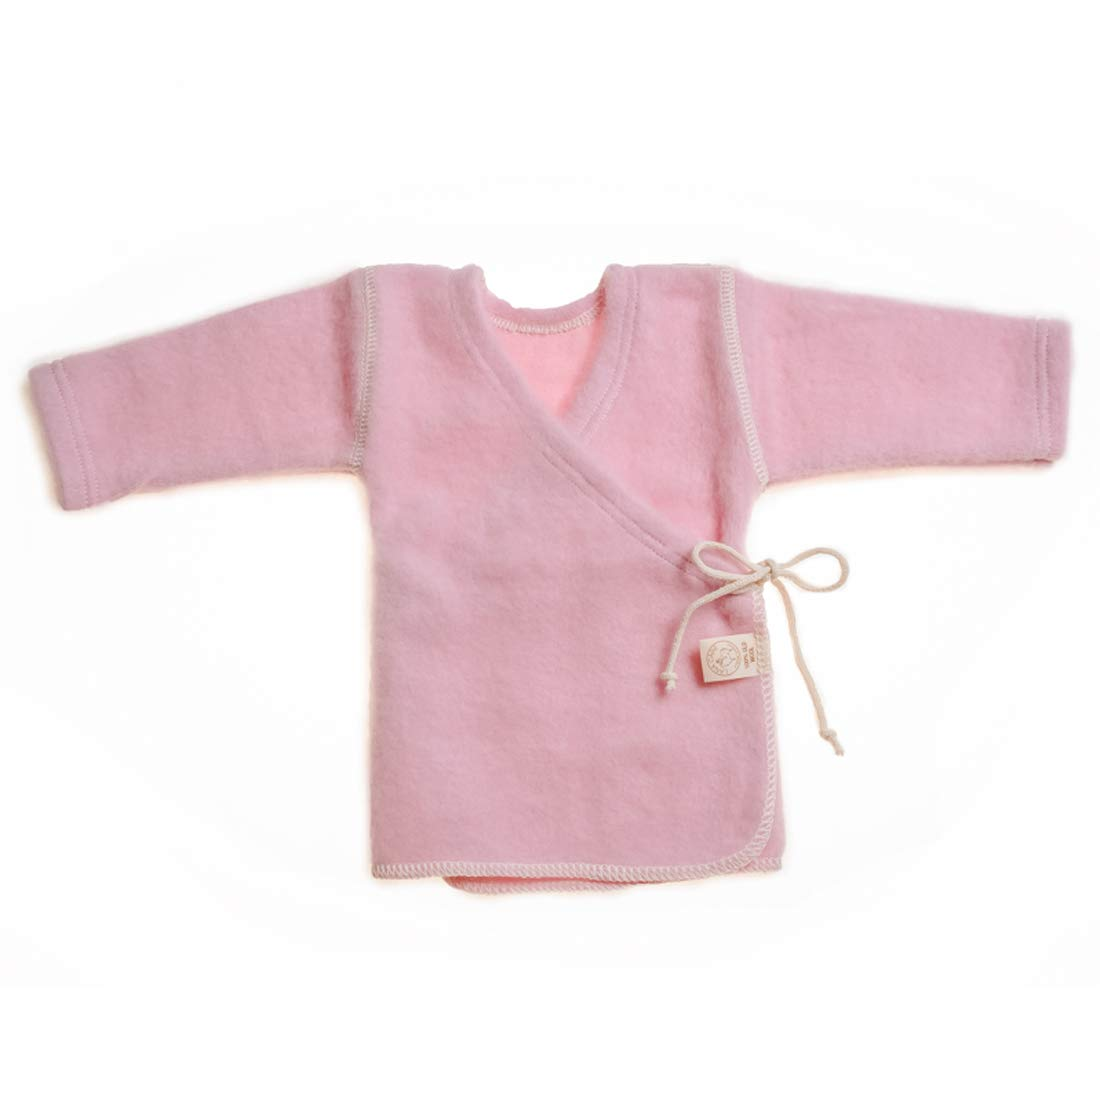 051d227e8 Amazon.com  LANACARE Organic Wool Baby Sweater